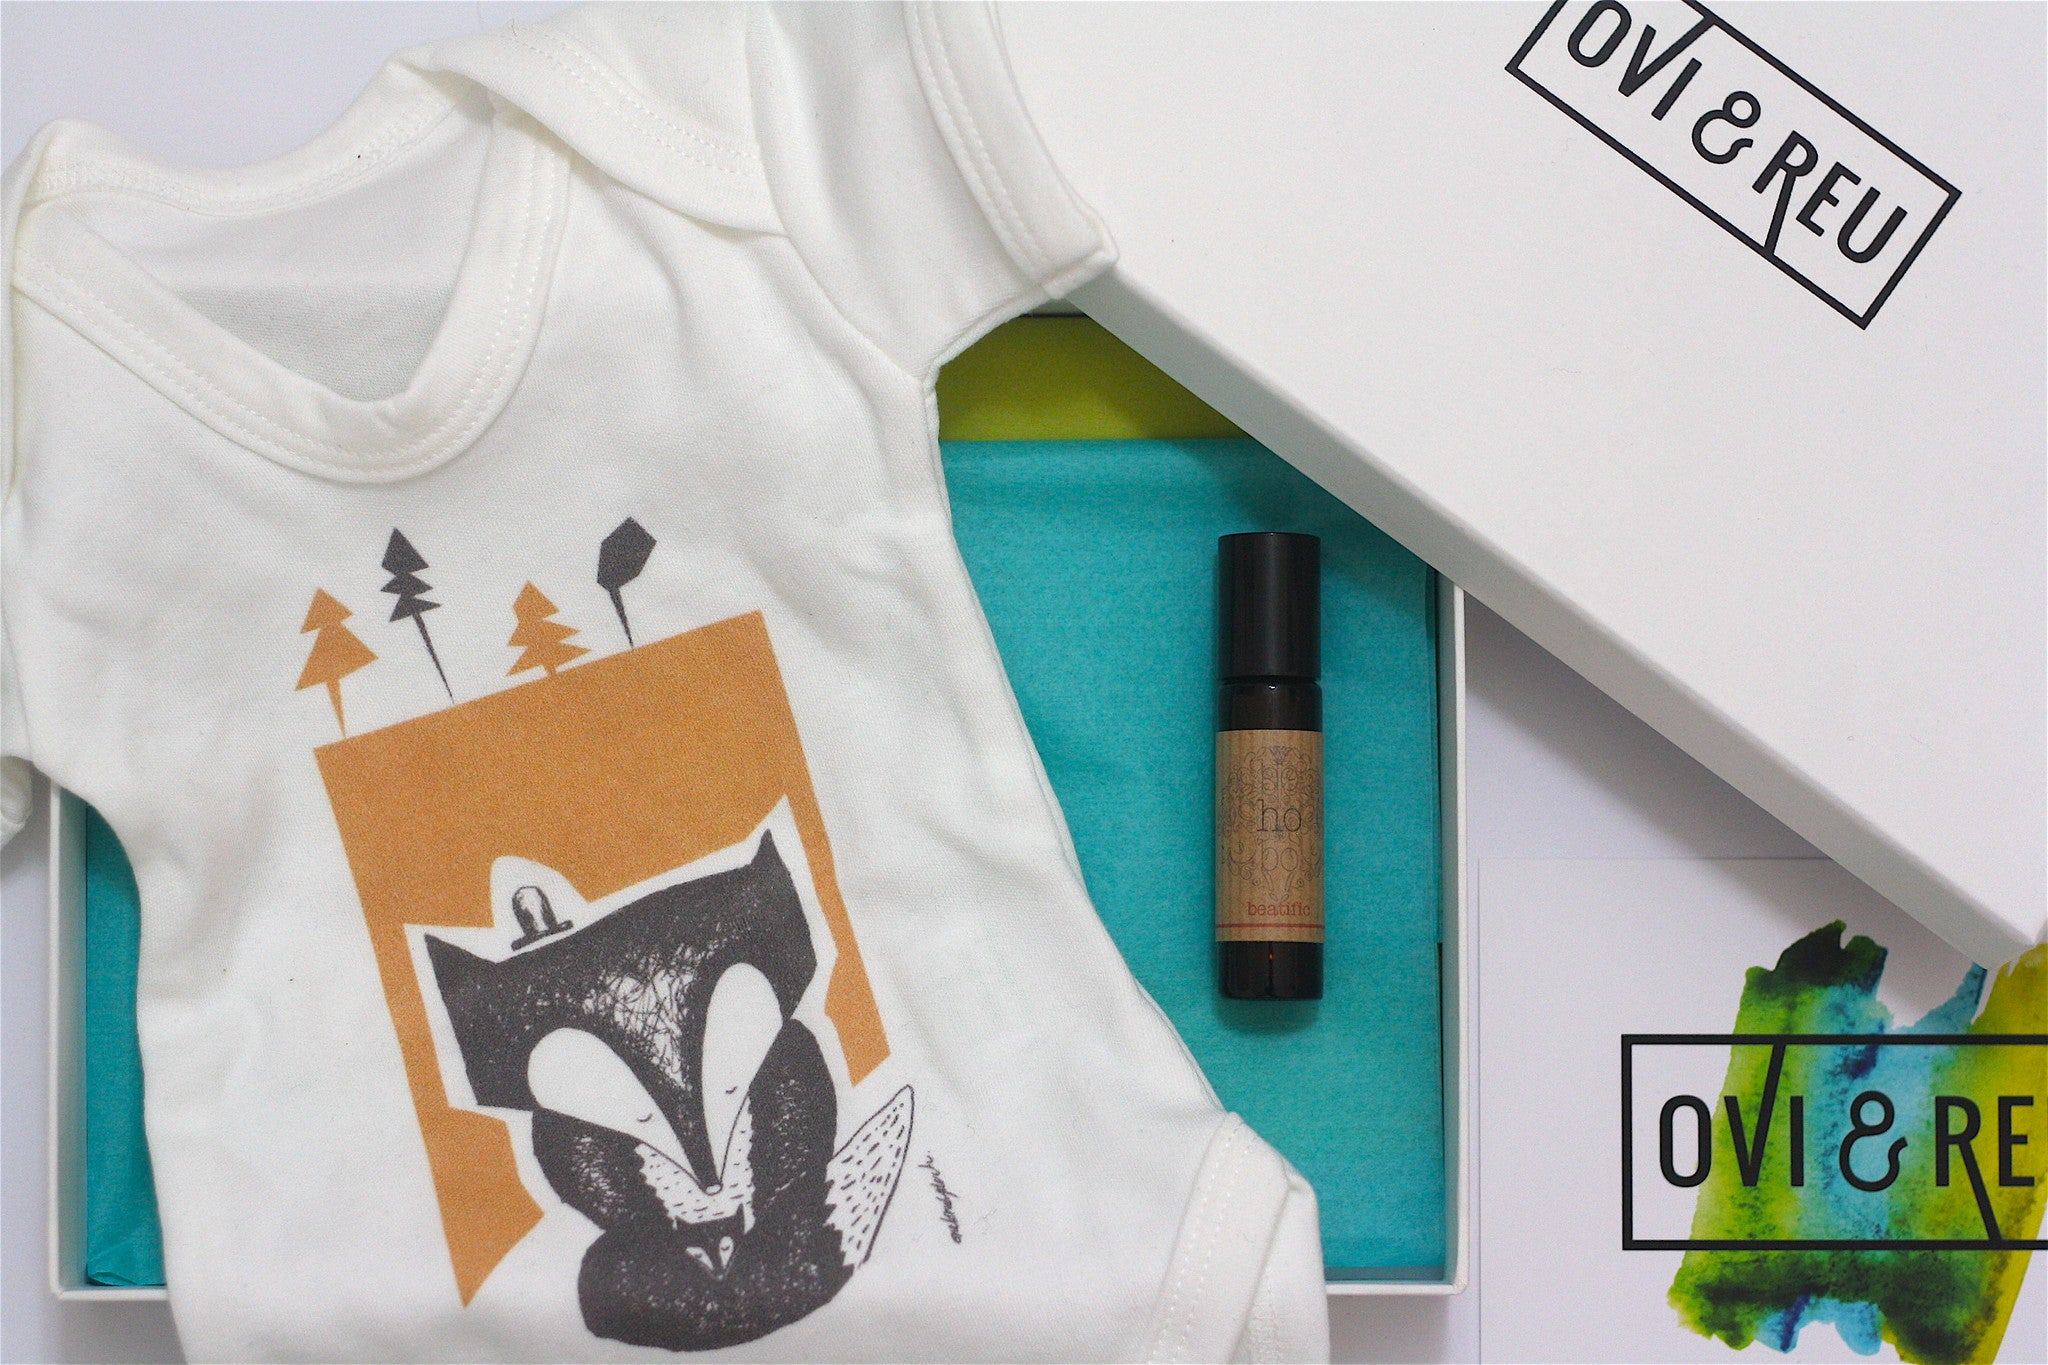 Ovi and Reu gift subscription box for new mums. The Newborn Box includes a fox baby vest and aromatherapy roller.